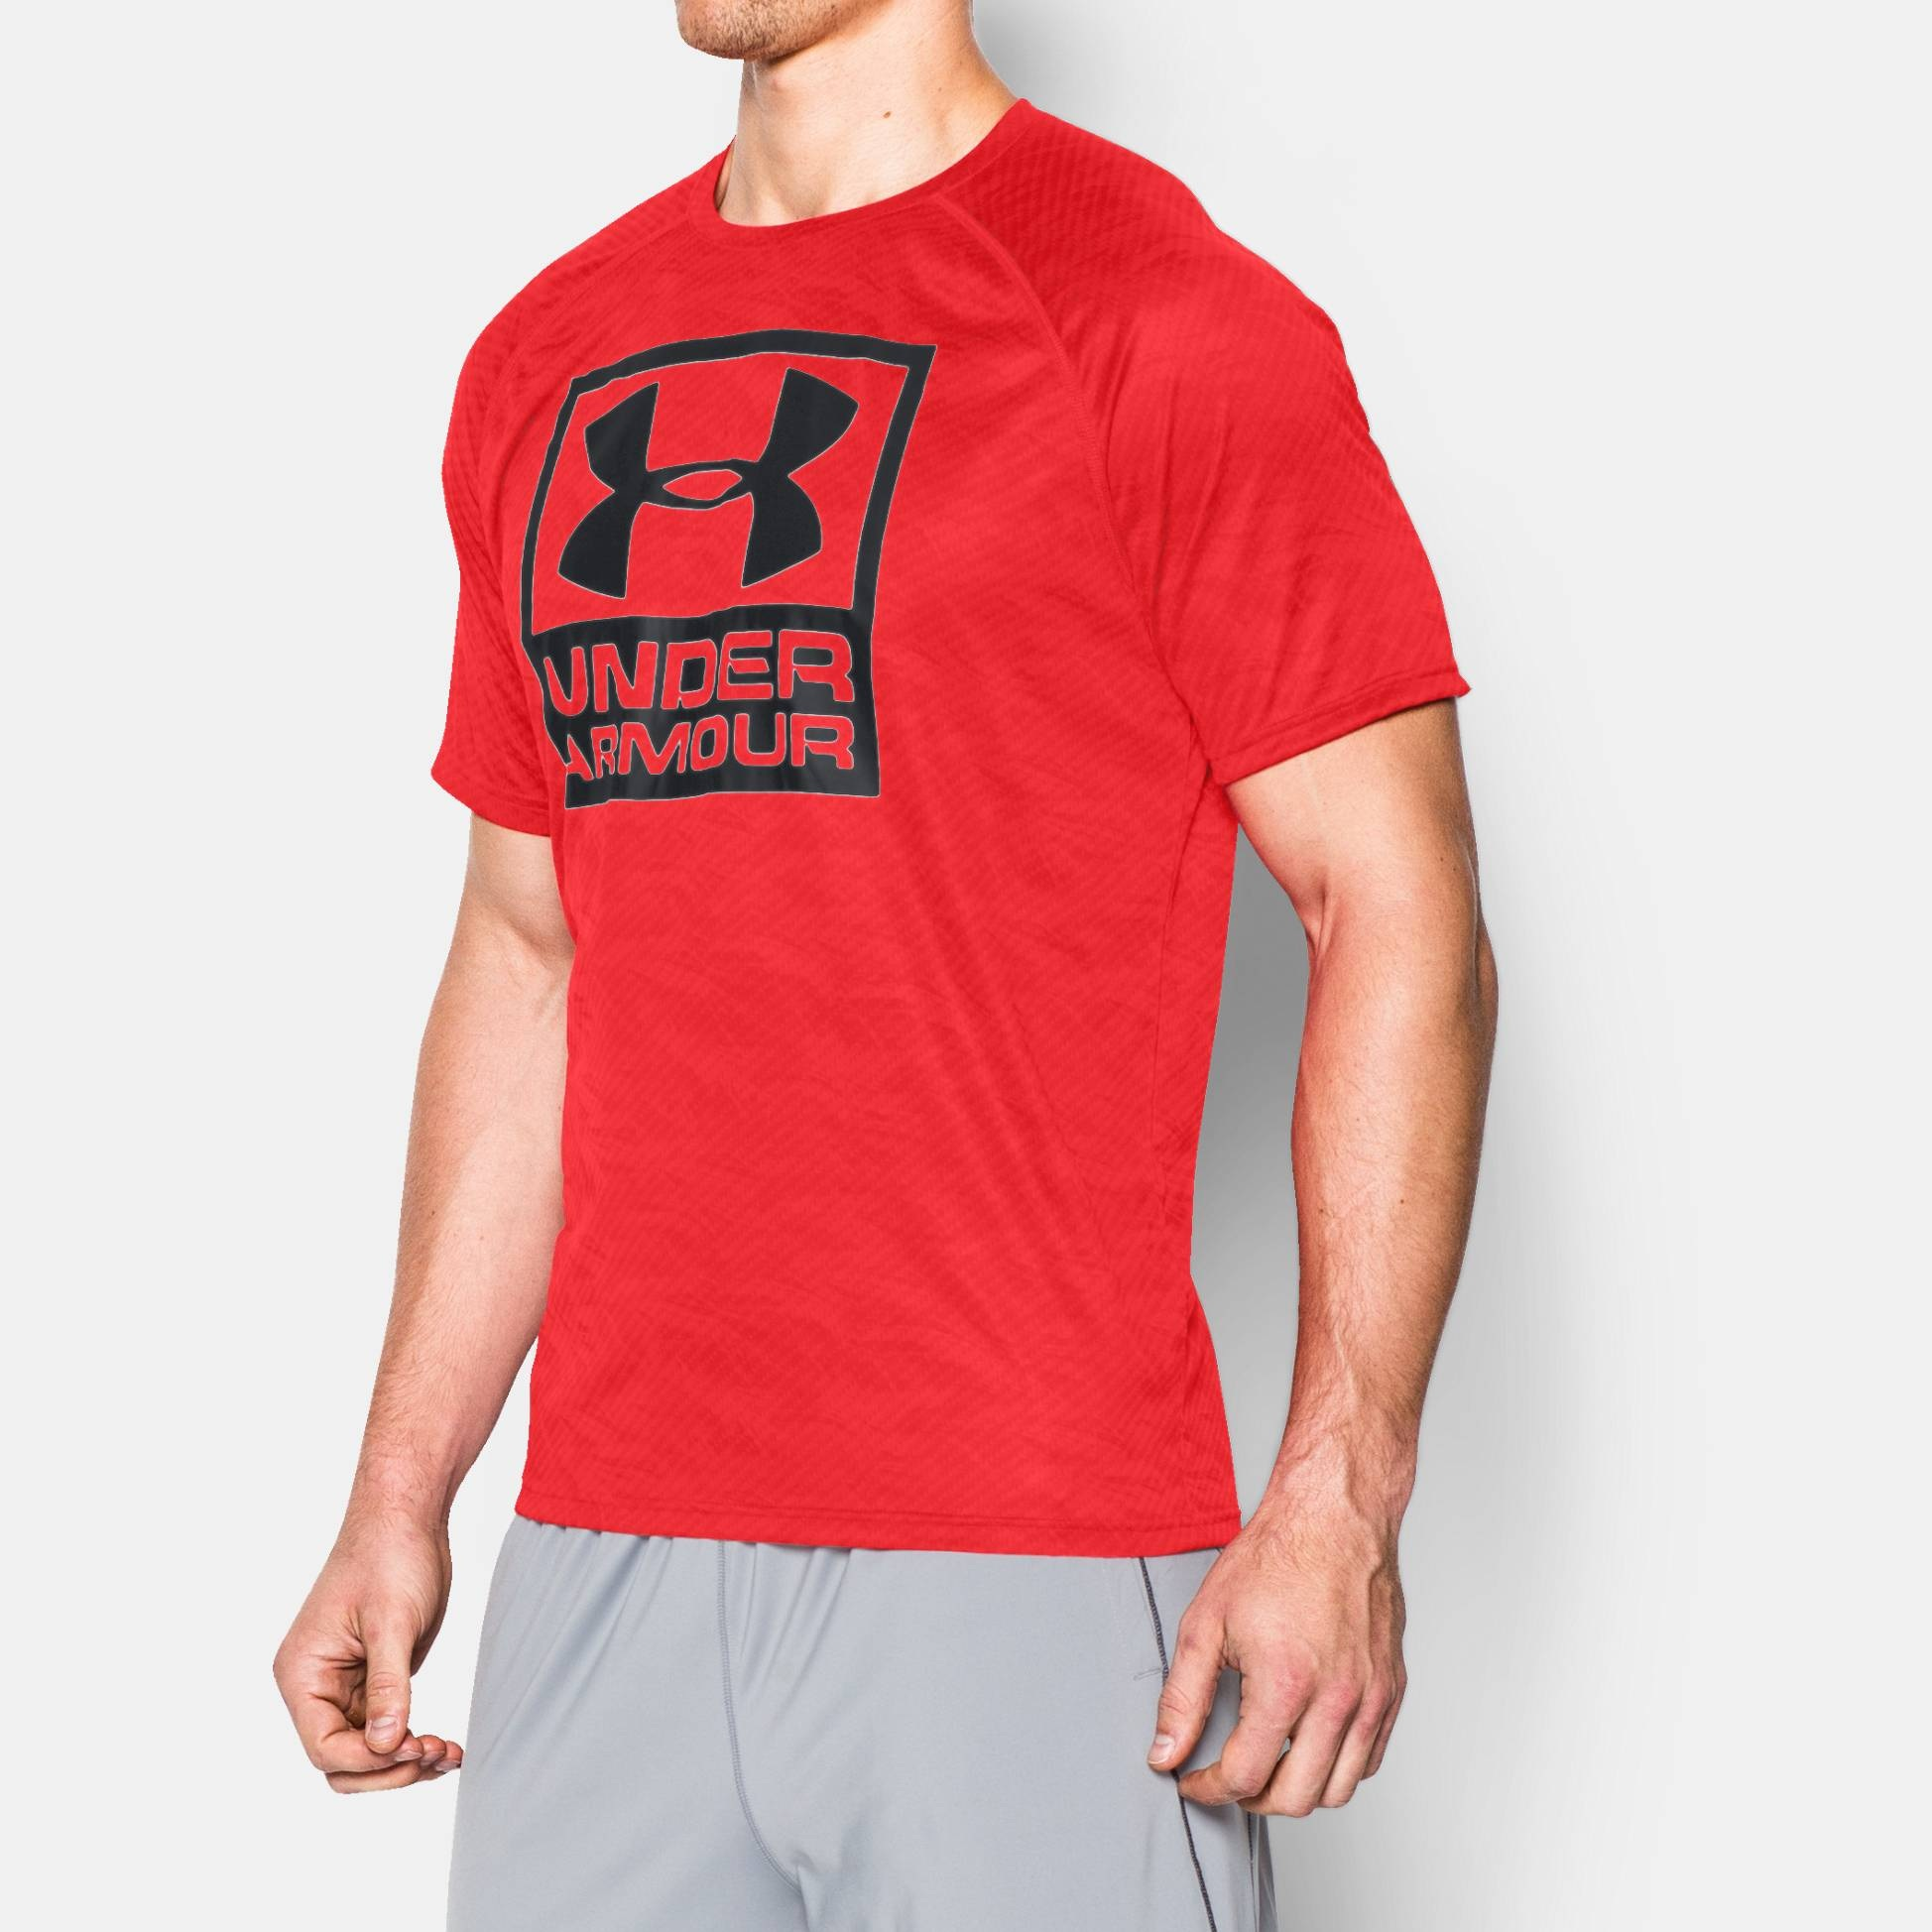 Fitness clothing under armour boxed logo printed t shirt for Gym printed t shirts